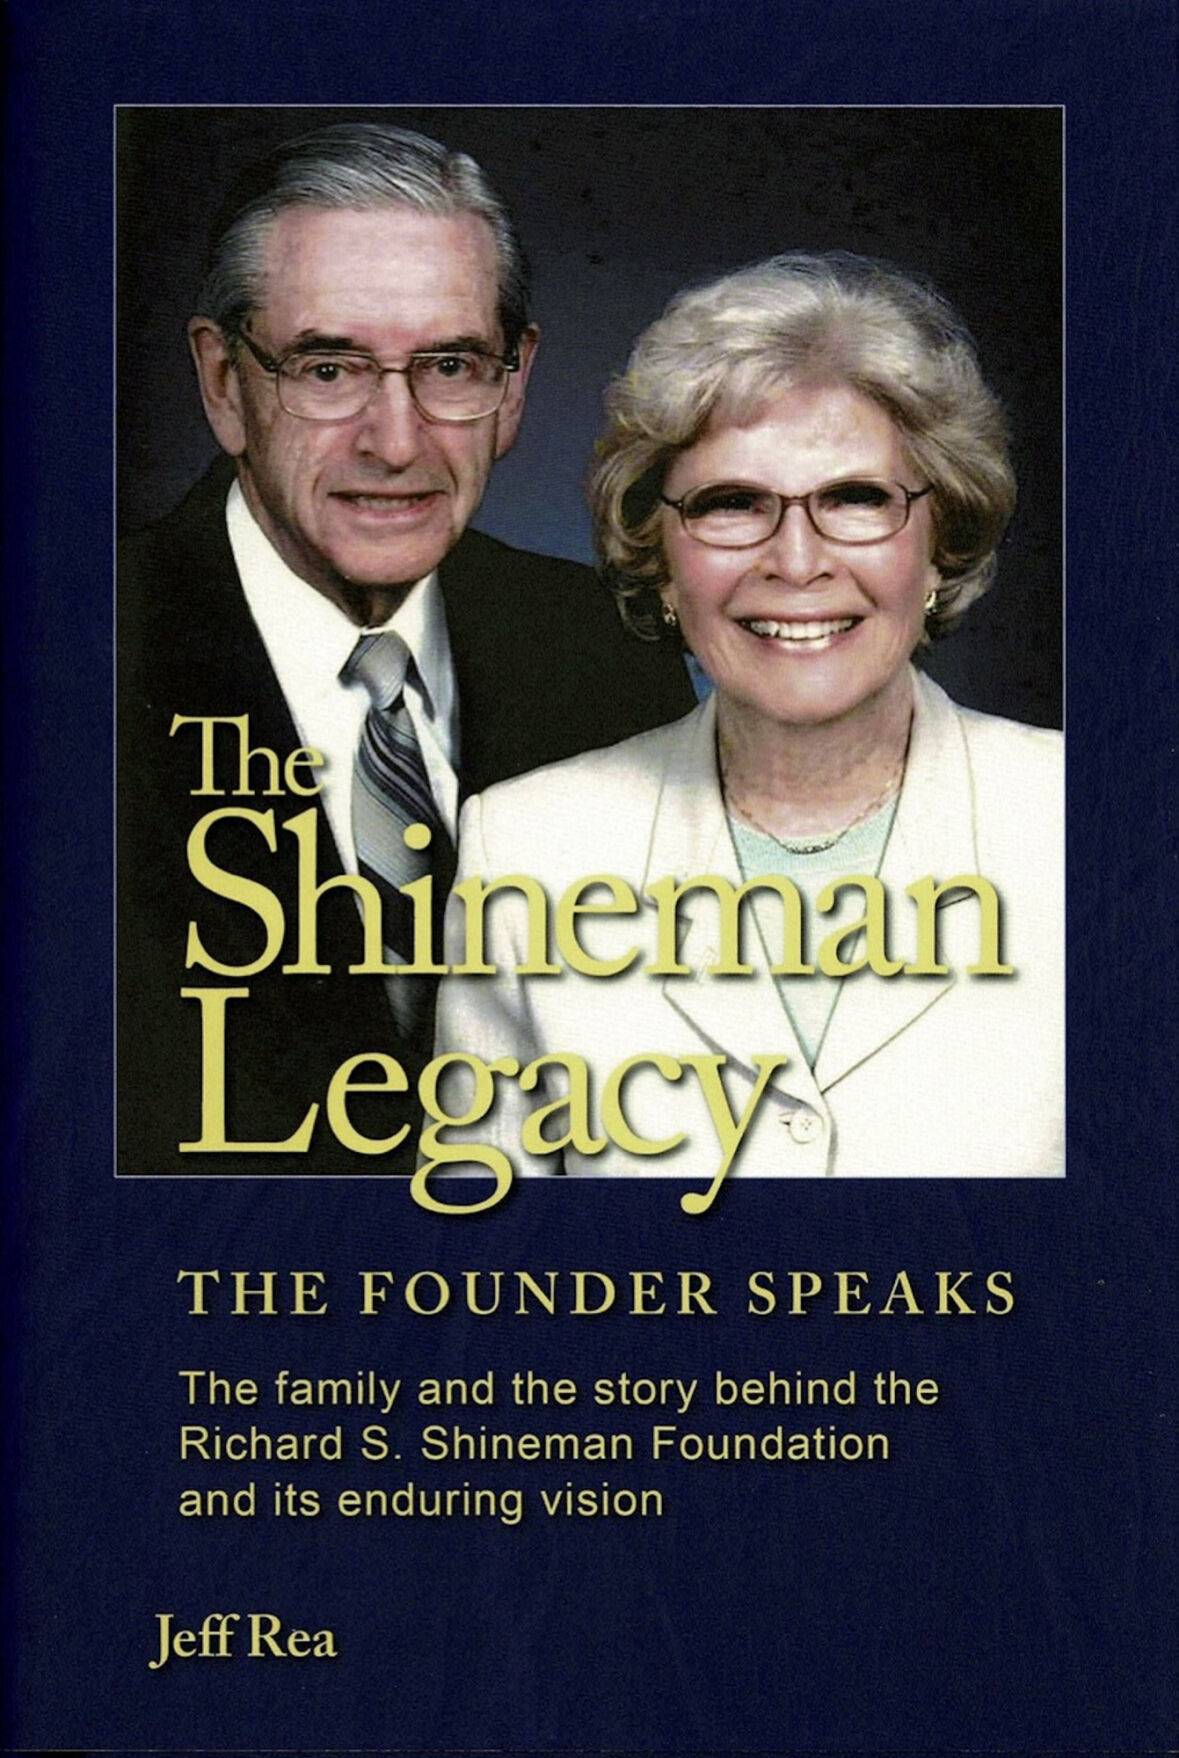 New book traces the eventful lives of the Shinemans, evolution of their foundation